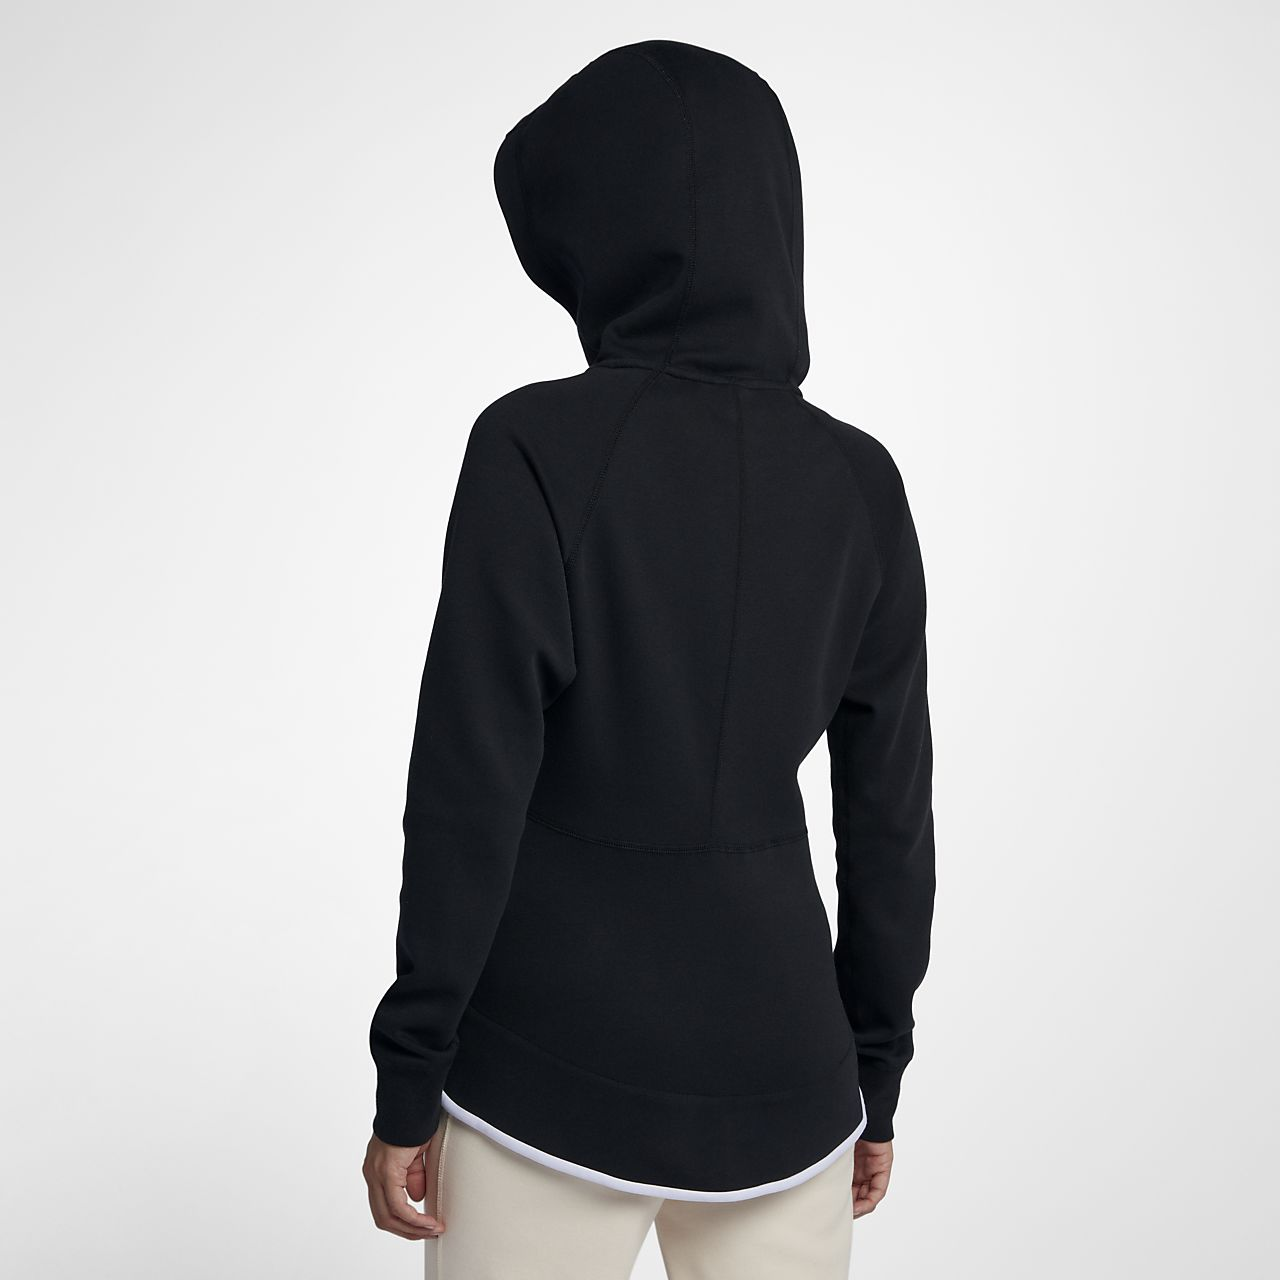 564405ecdfbb Nike Sportswear Tech Fleece Windrunner Women s Full-Zip Hoodie. Nike.com